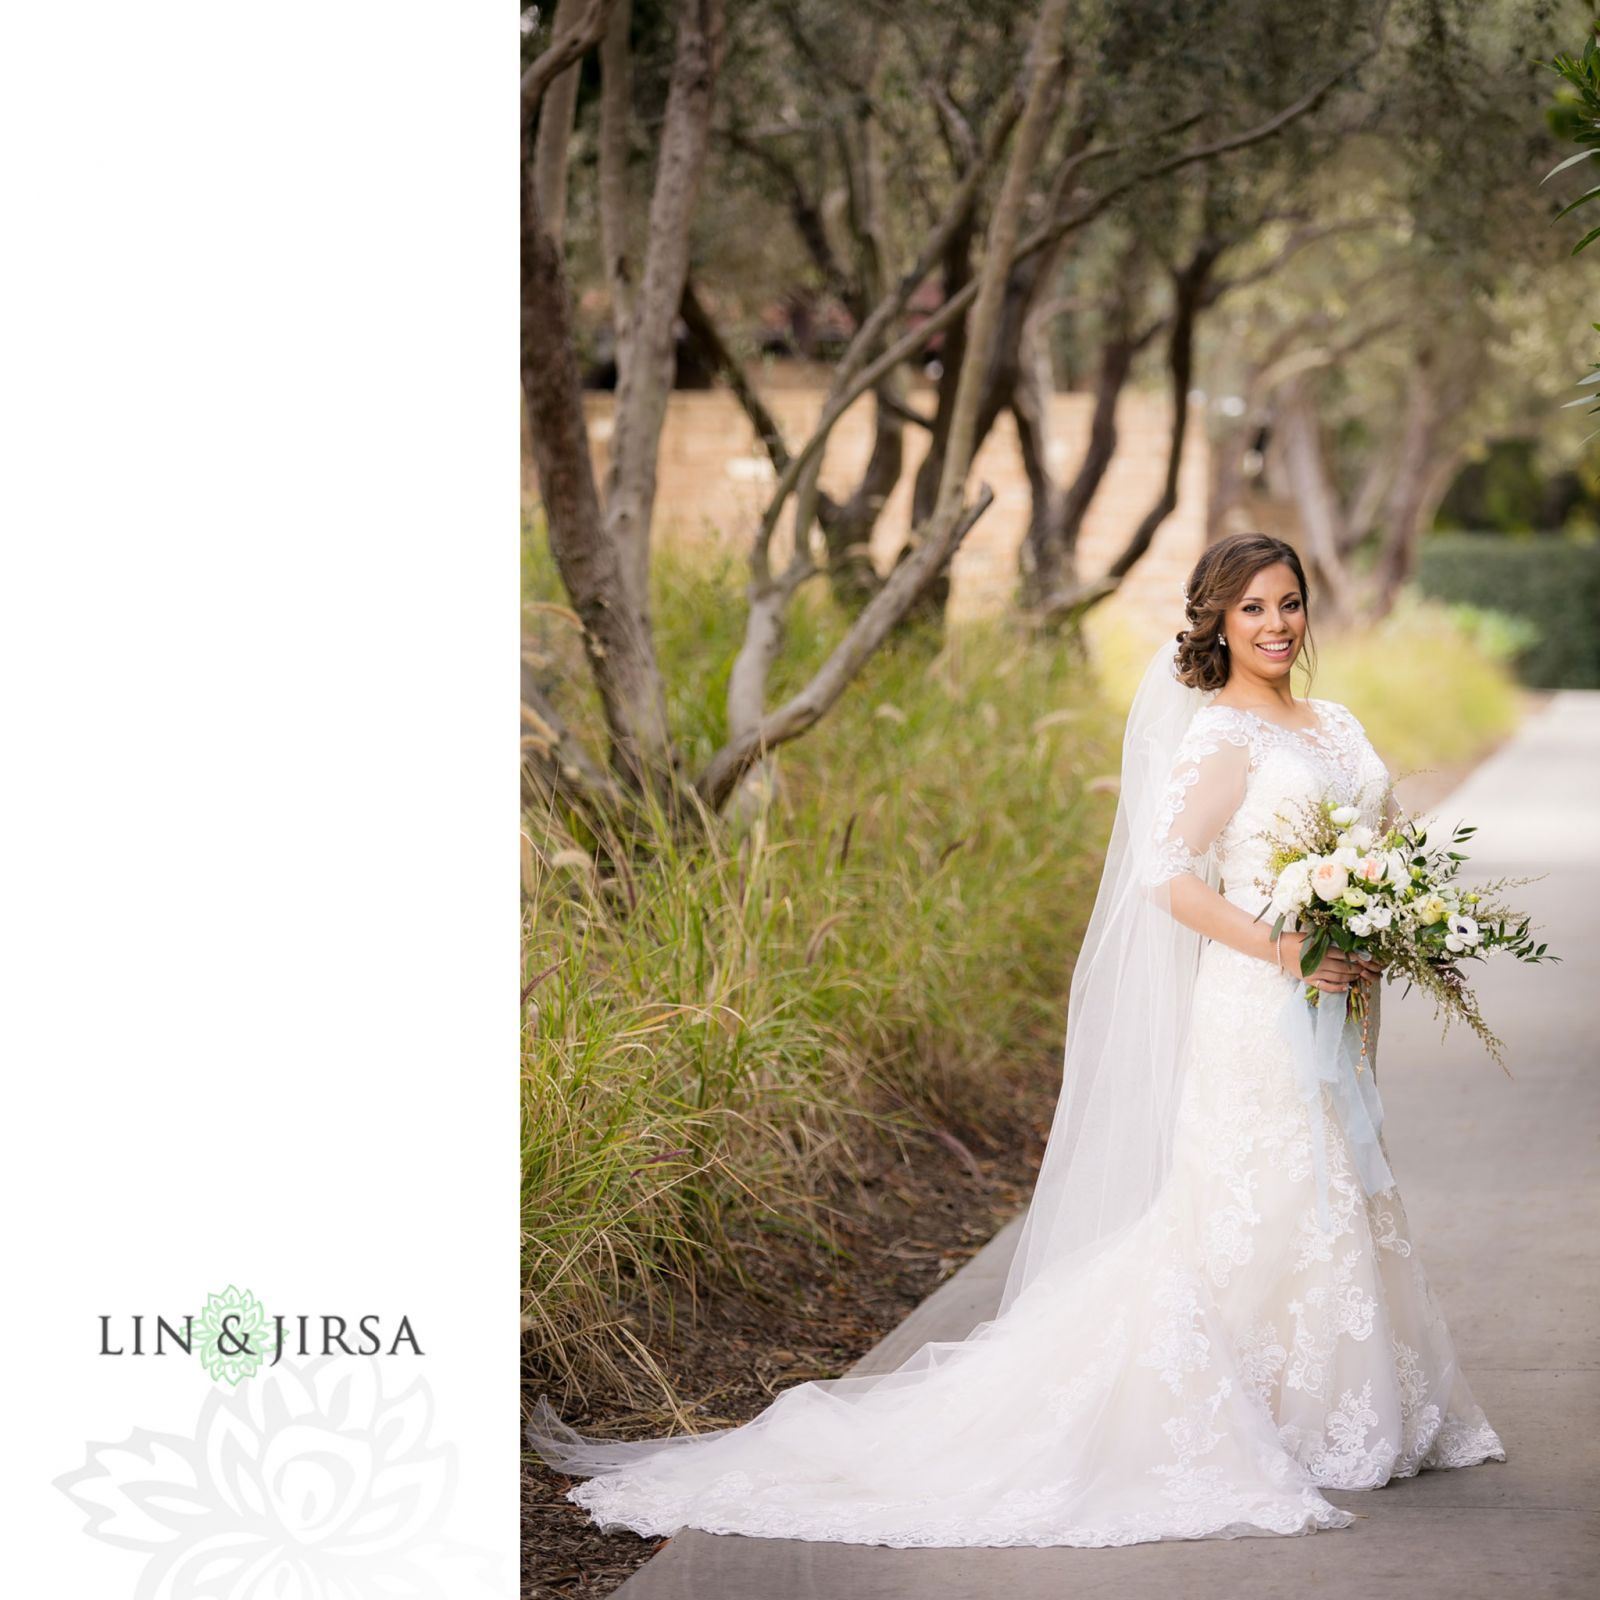 Bridal portrait wearing long sleeved lace dress holding wedding bouquet.   Wedding Day hair and makeup  beauty by Vanity Belle in Orange County (Costa Mesa) and San Diego (La Jolla) thevanitybelle.com. Photography by Lin and Jirsa.